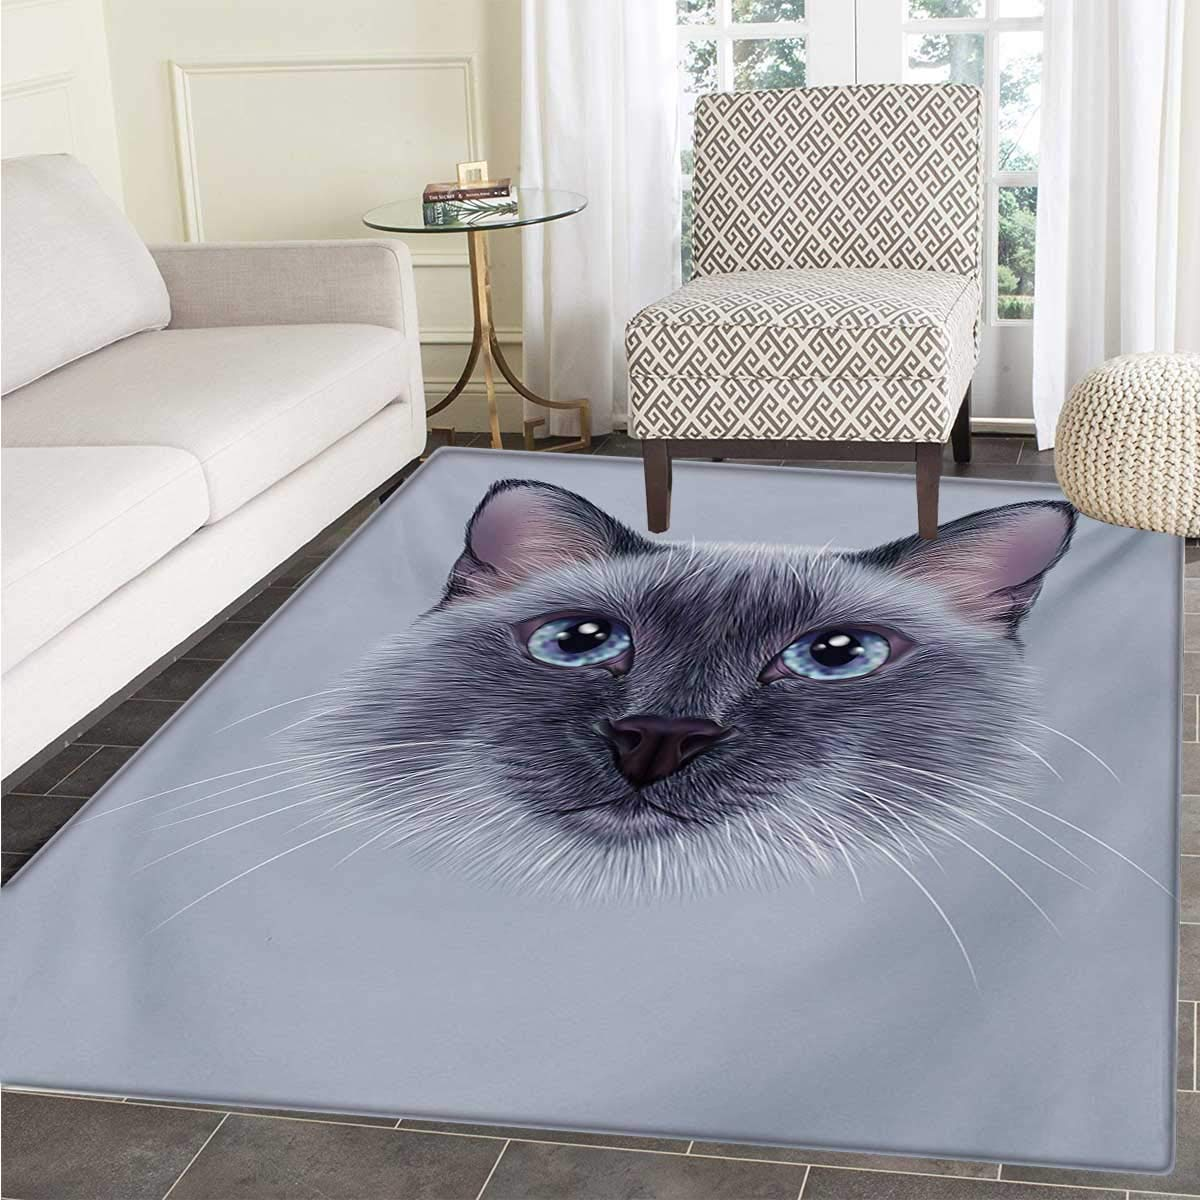 Animal Door Mats Area Rug Portrait Image Thai Siamese Cat Retro Style Lettering Artwork Floor mat Bath Mat tub 48''x71'' White Sky Blue Grey by Anhounine